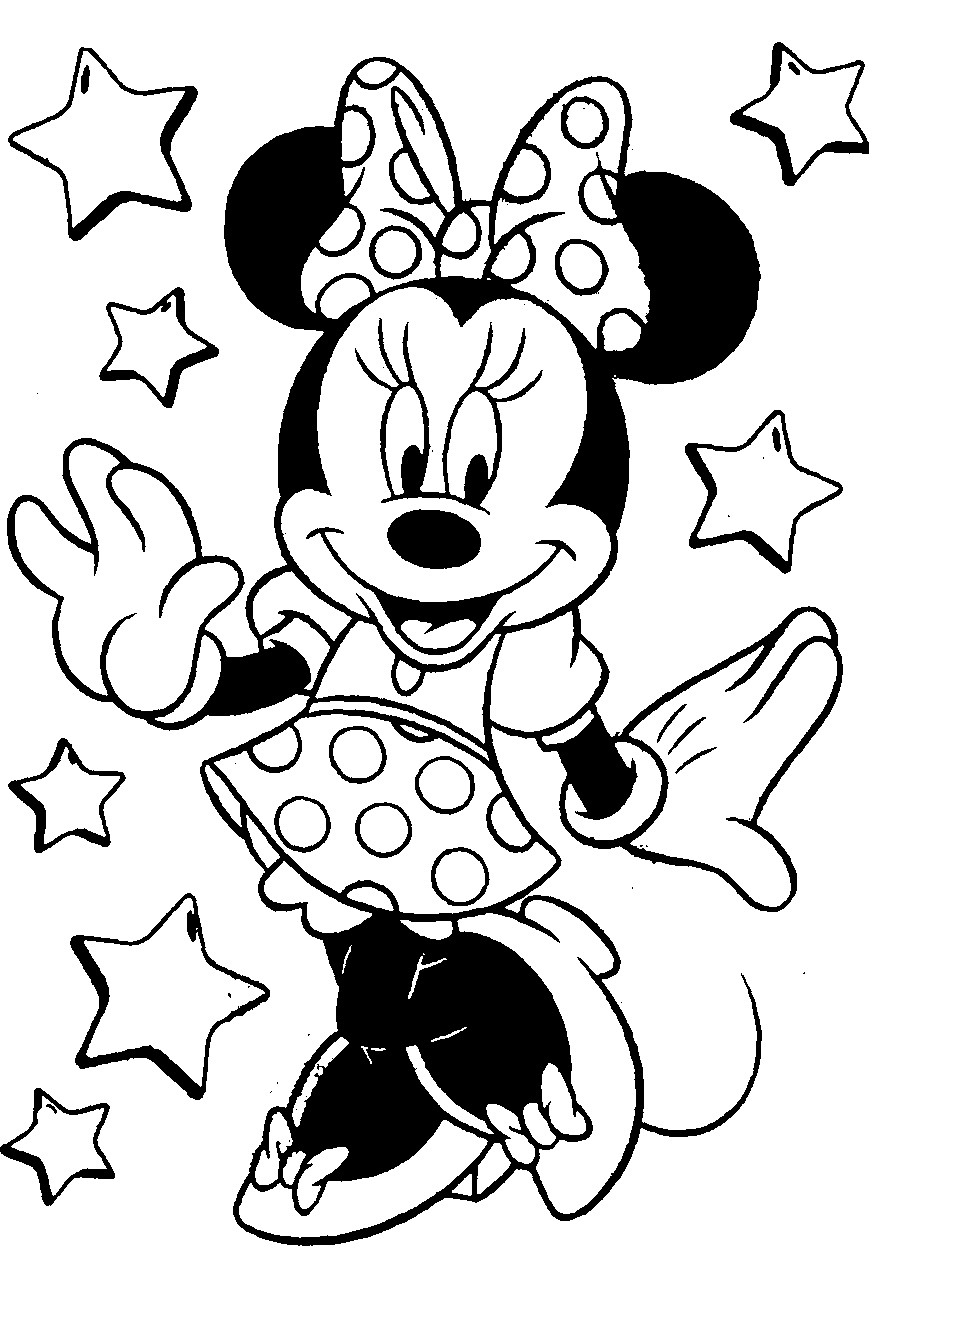 Mickey And Minnie Coloring Pages To Print Coloring Pages Mickey Minnie Mouse Coloring Pages And Pictures To